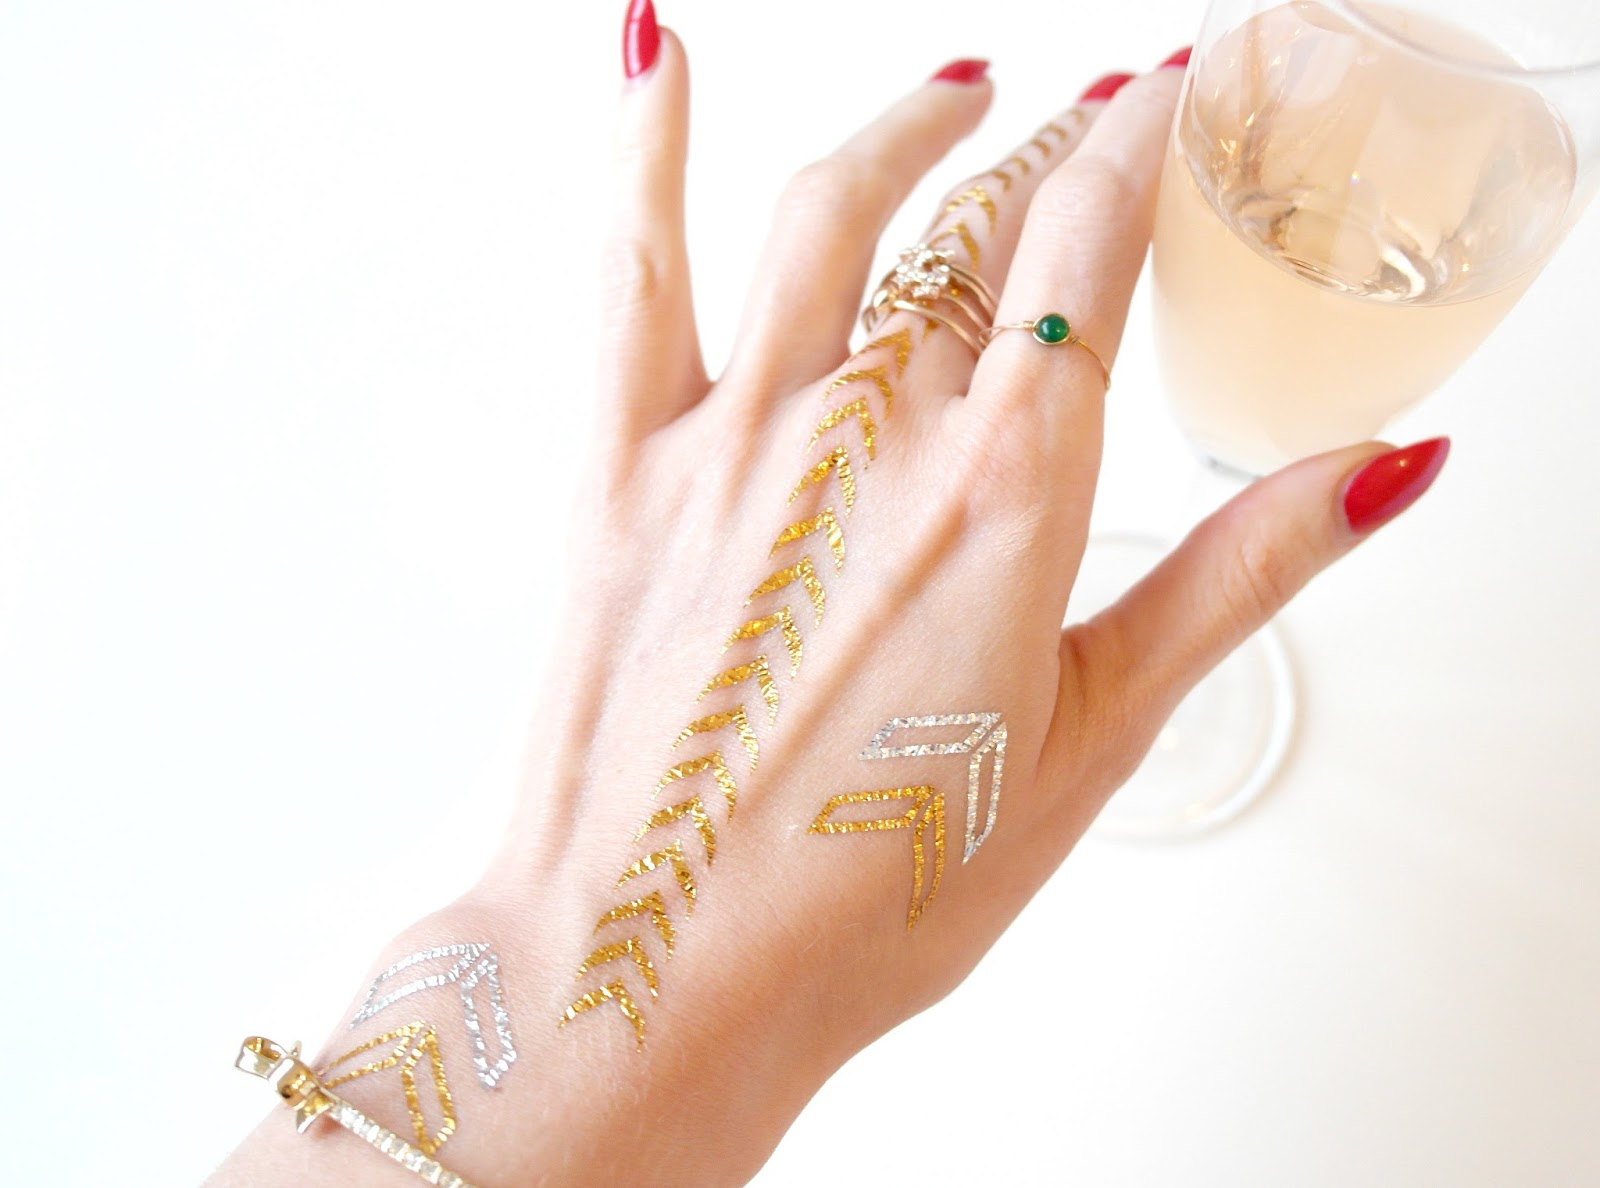 unique freak temporary tattoos, metallic tattoos review